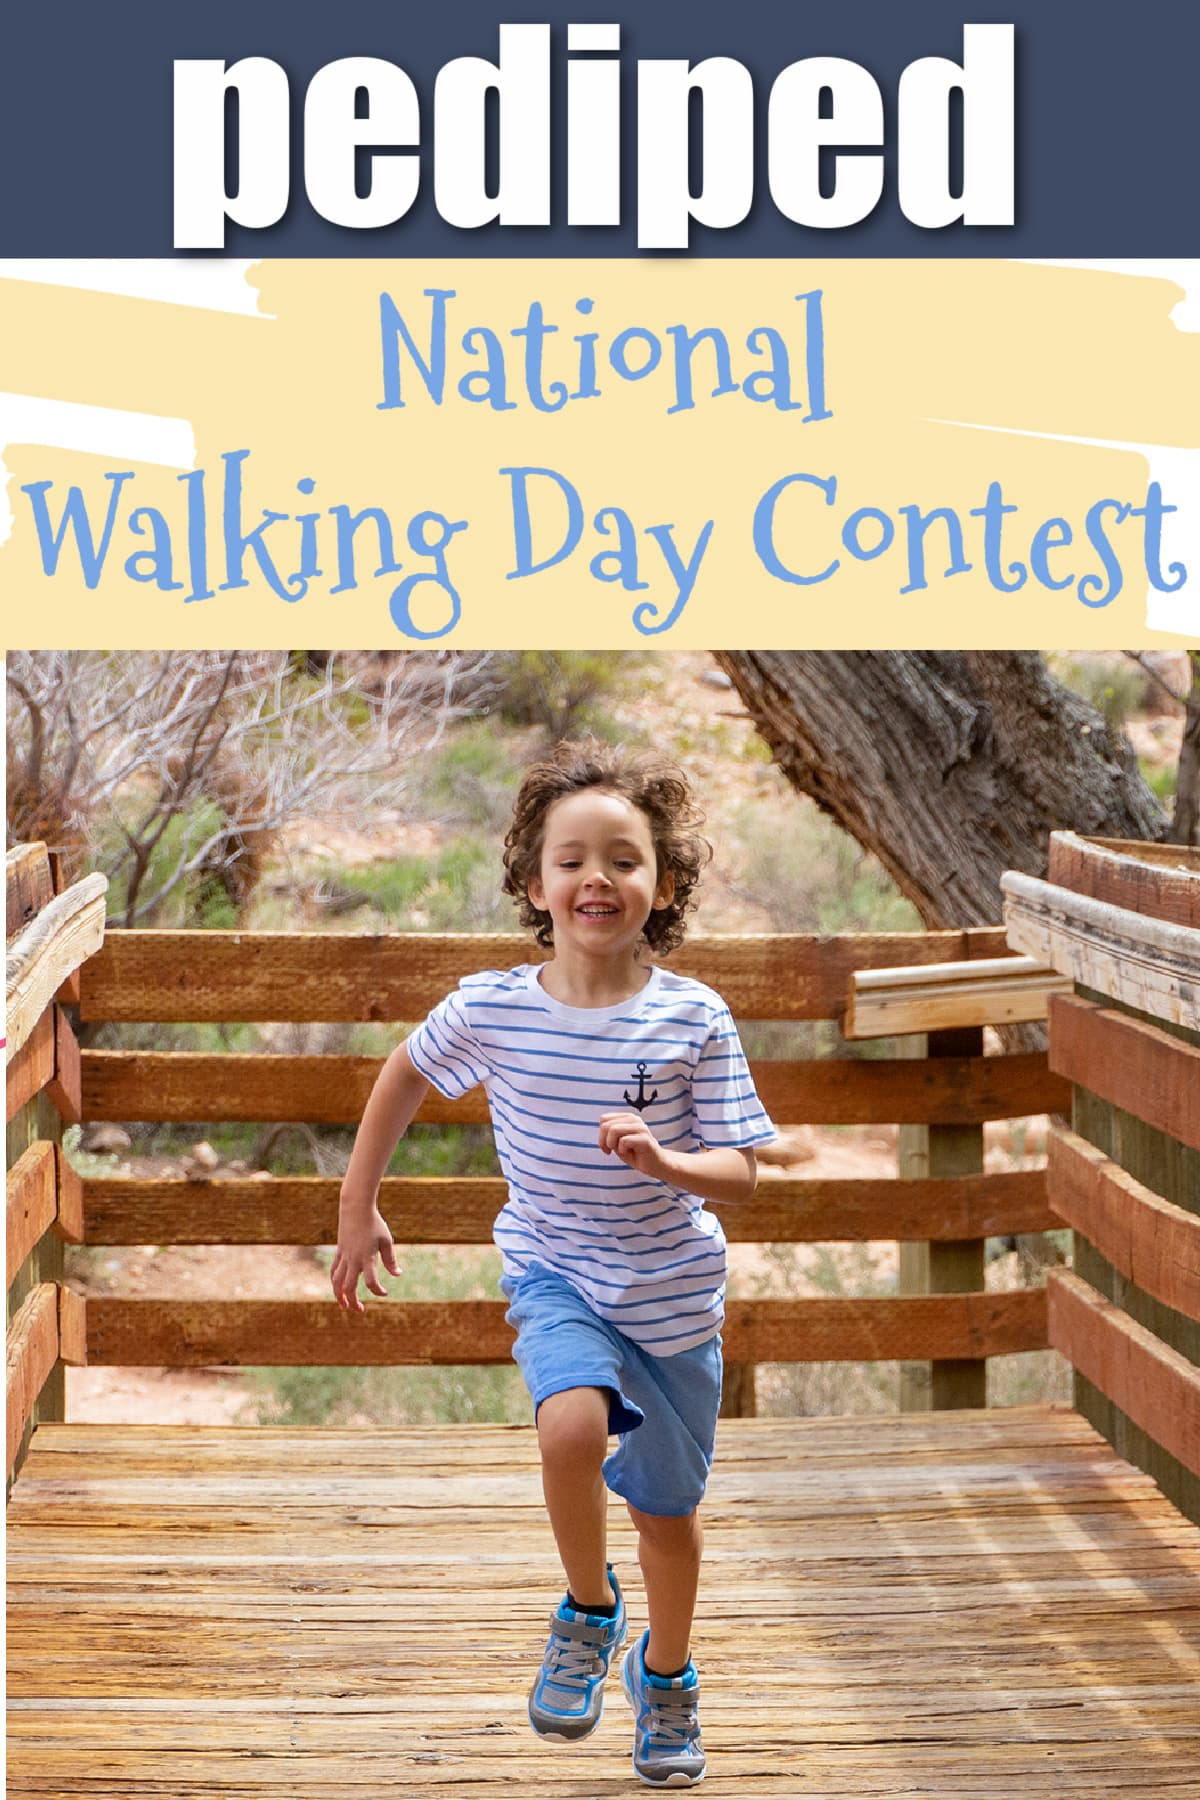 pediped National Walking Day Contest (+ Giveaway)